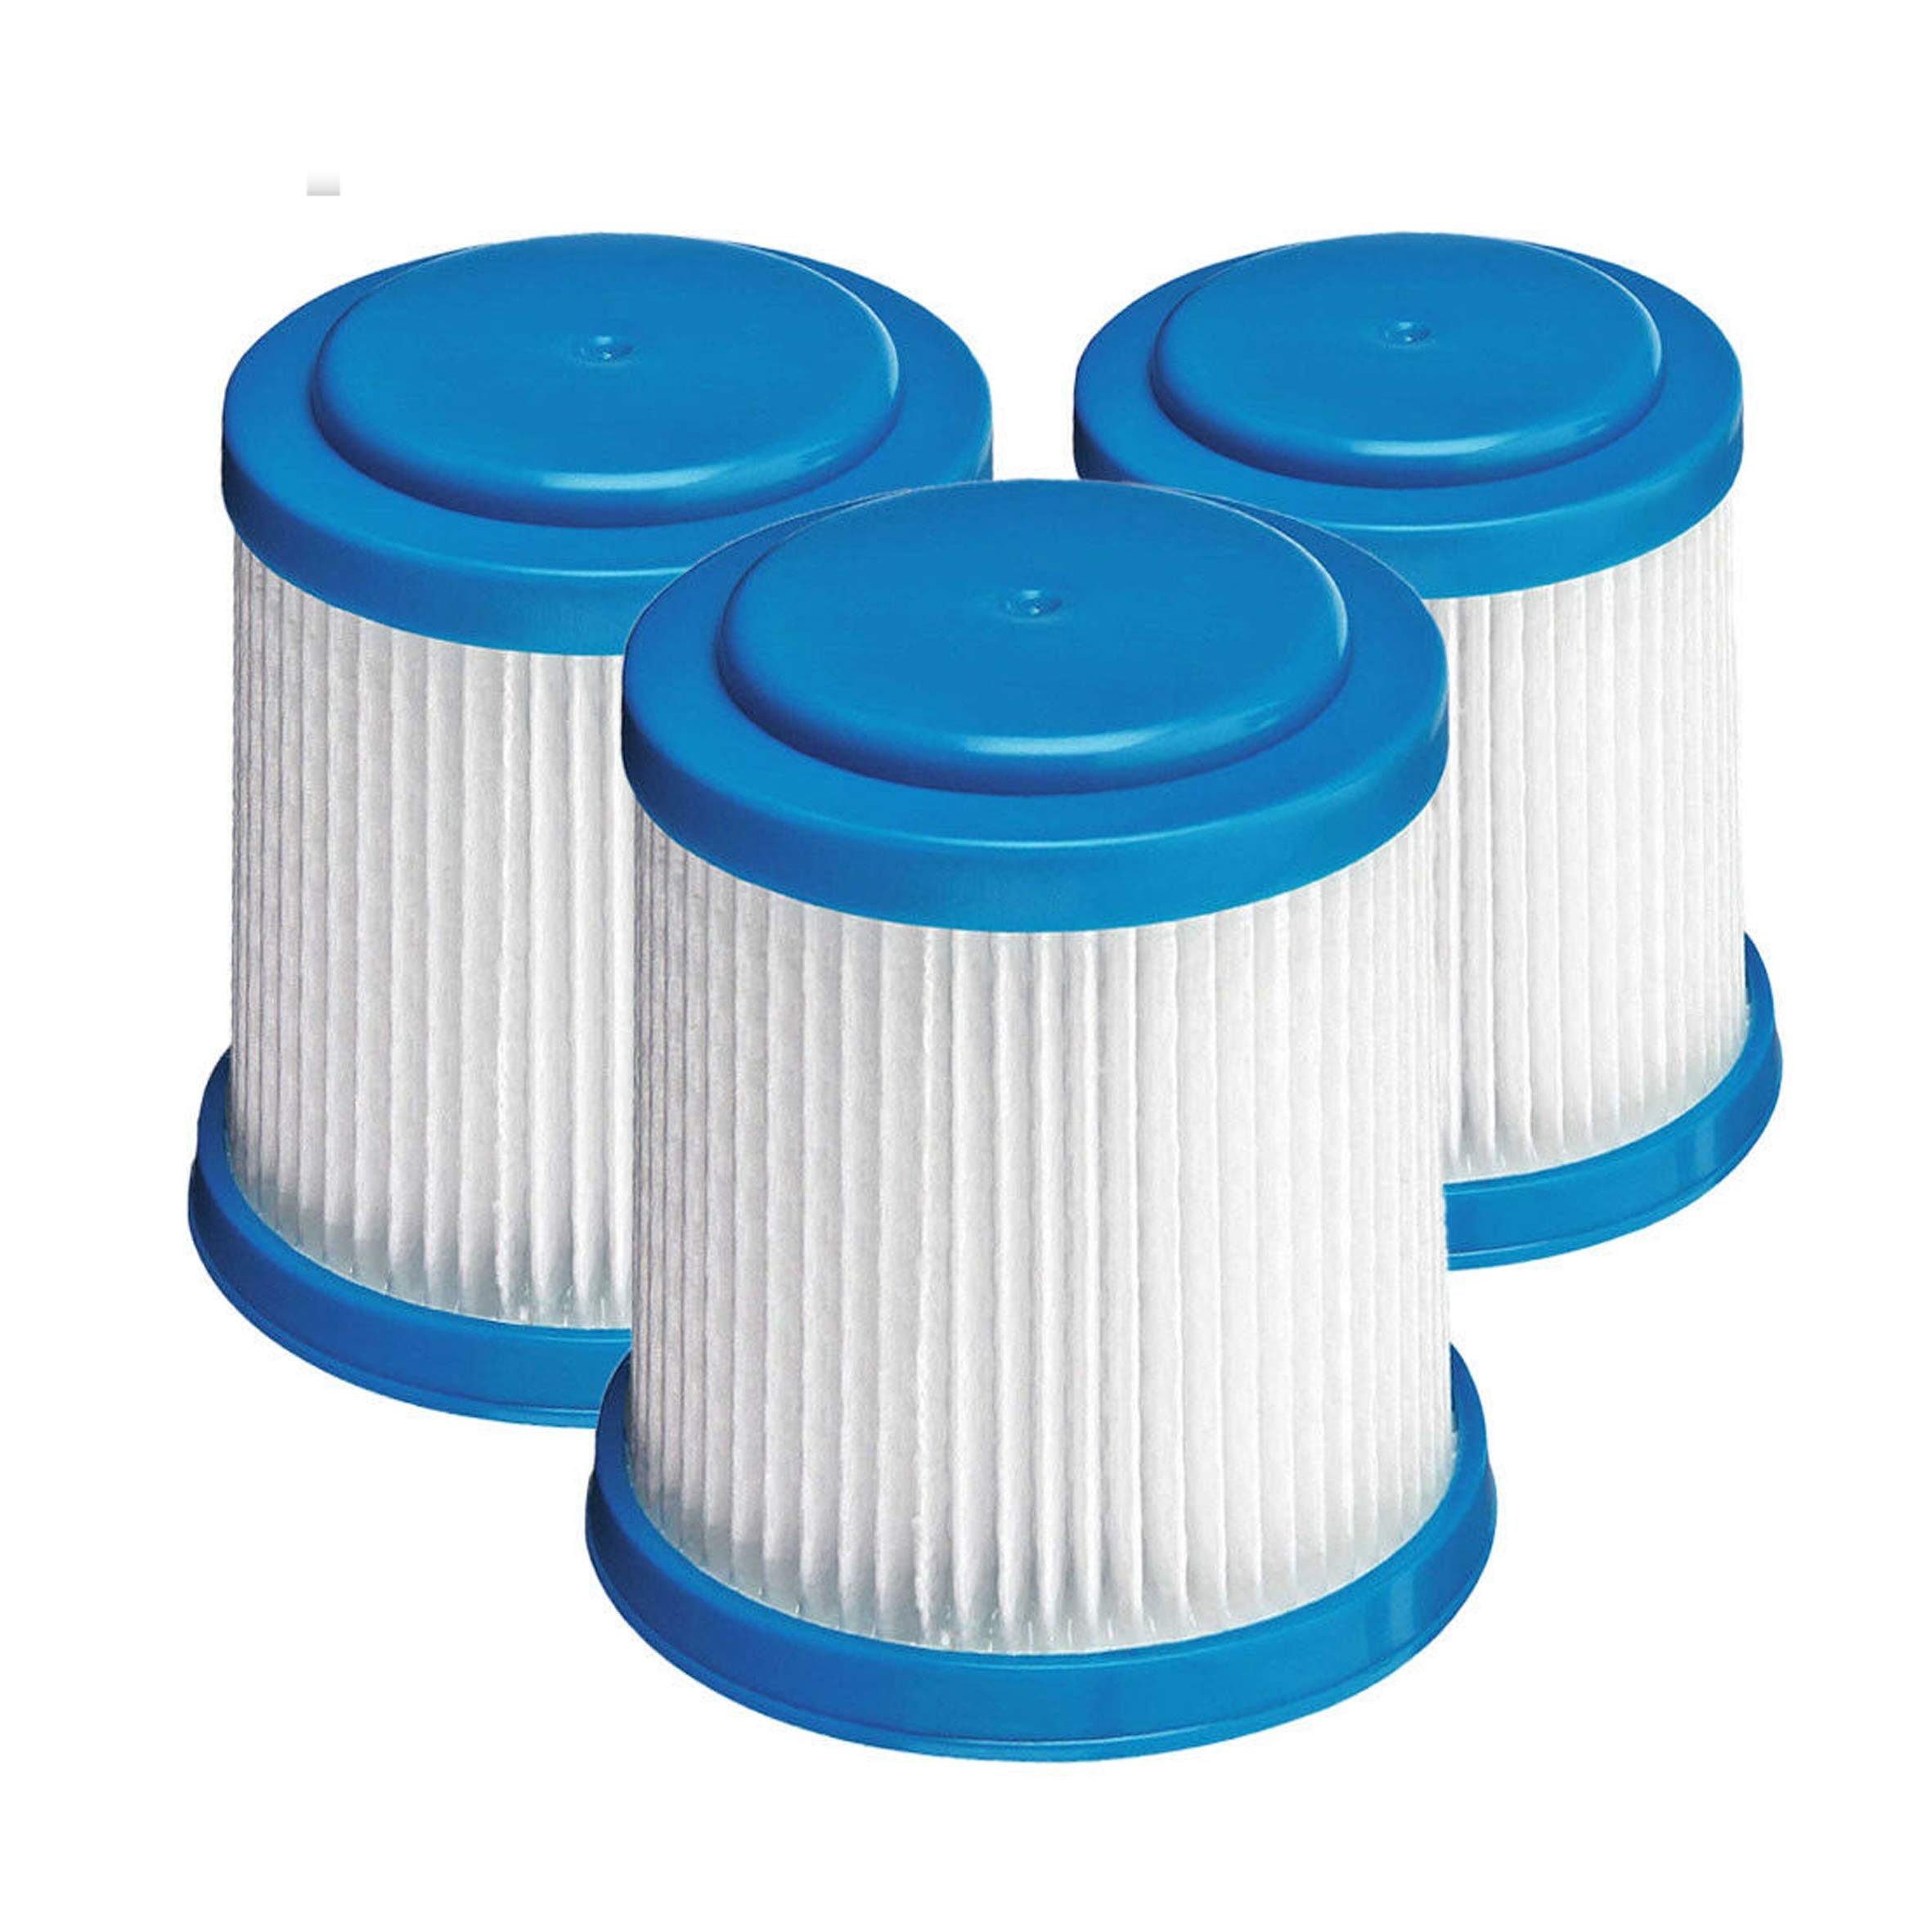 VPF20 Vacuum Filter for Black and Decker Vacuum Cleaner Filters HFEJ415JWMF10 Type 1 Replaces Part # VPF20 9060605801 90606058-01 (3 pack)